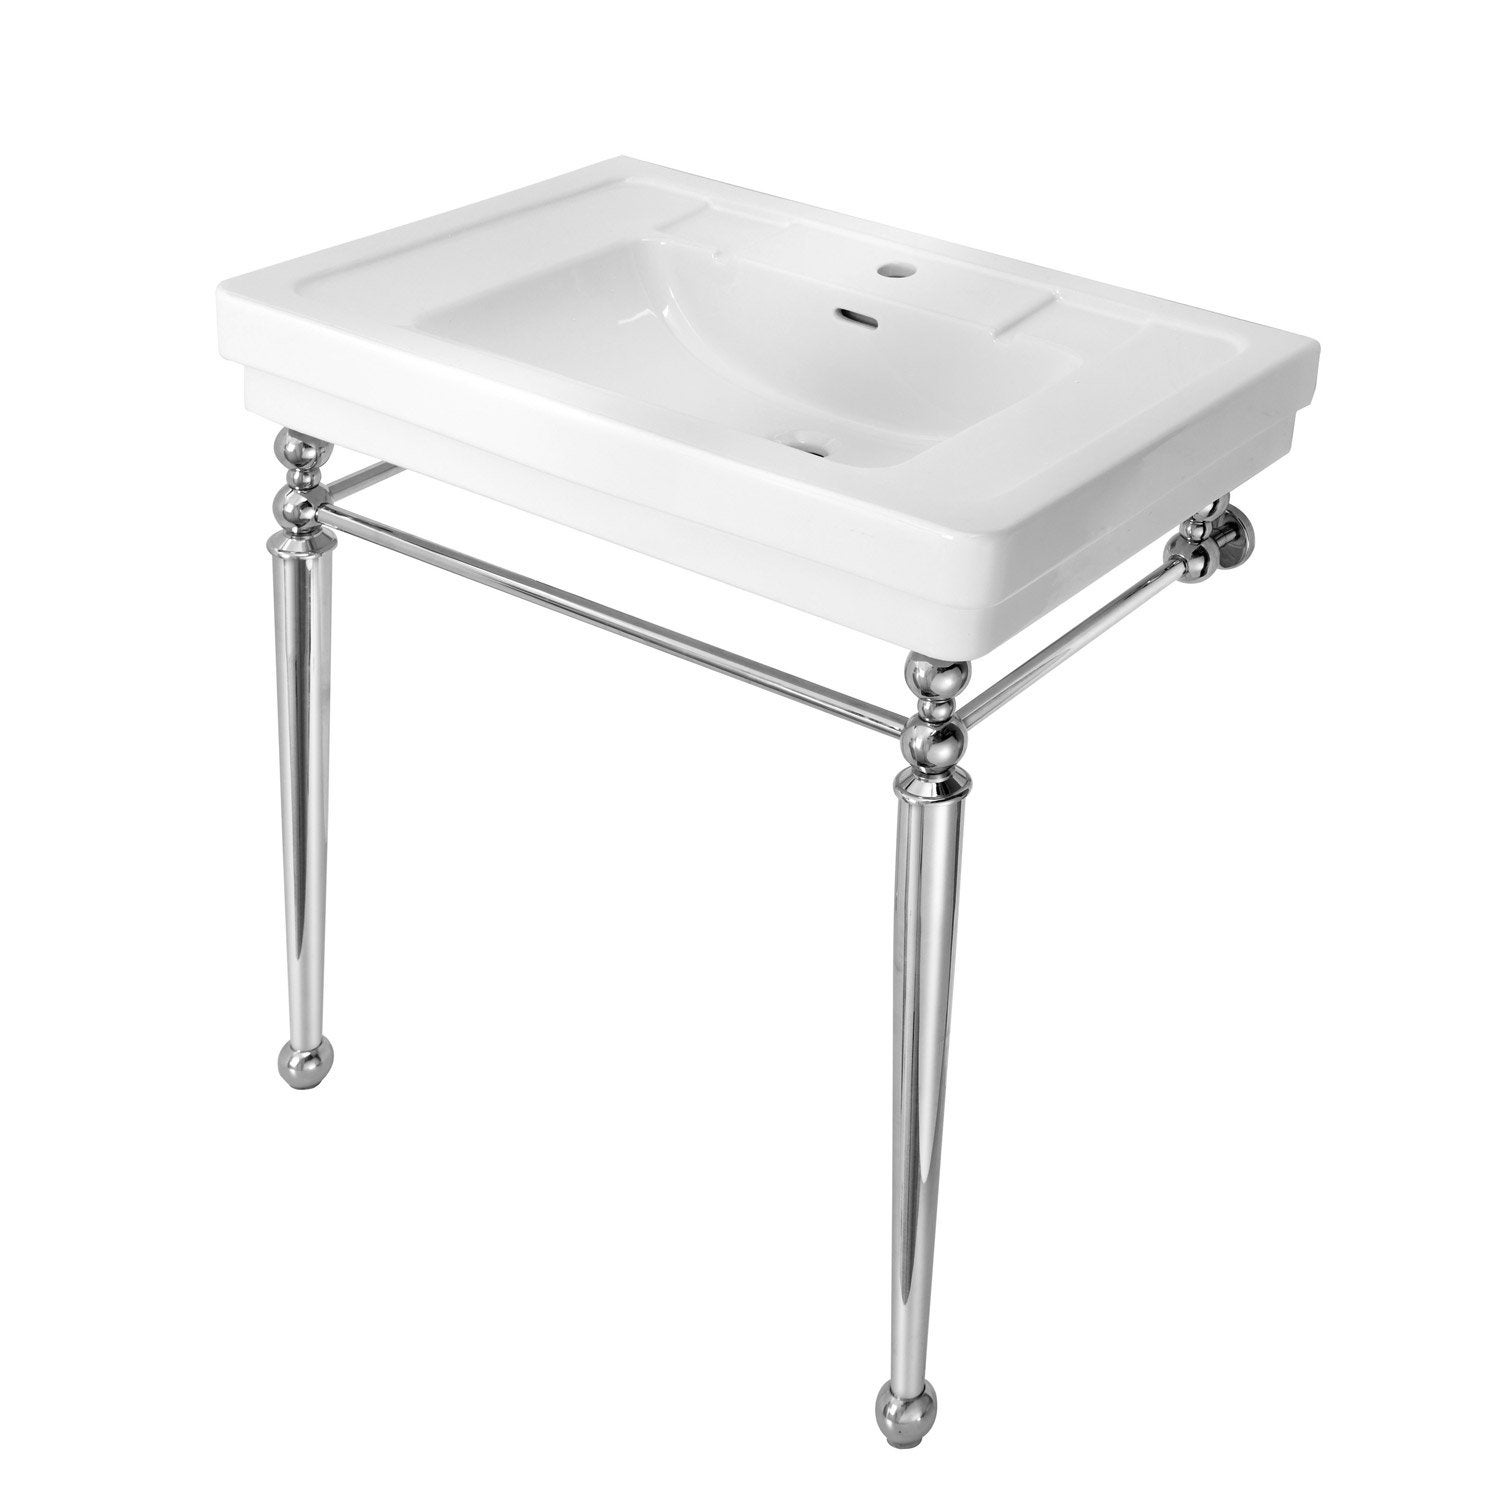 Plan vasque jazz 80 cm leroy merlin for Lavabo avec colonne leroy merlin